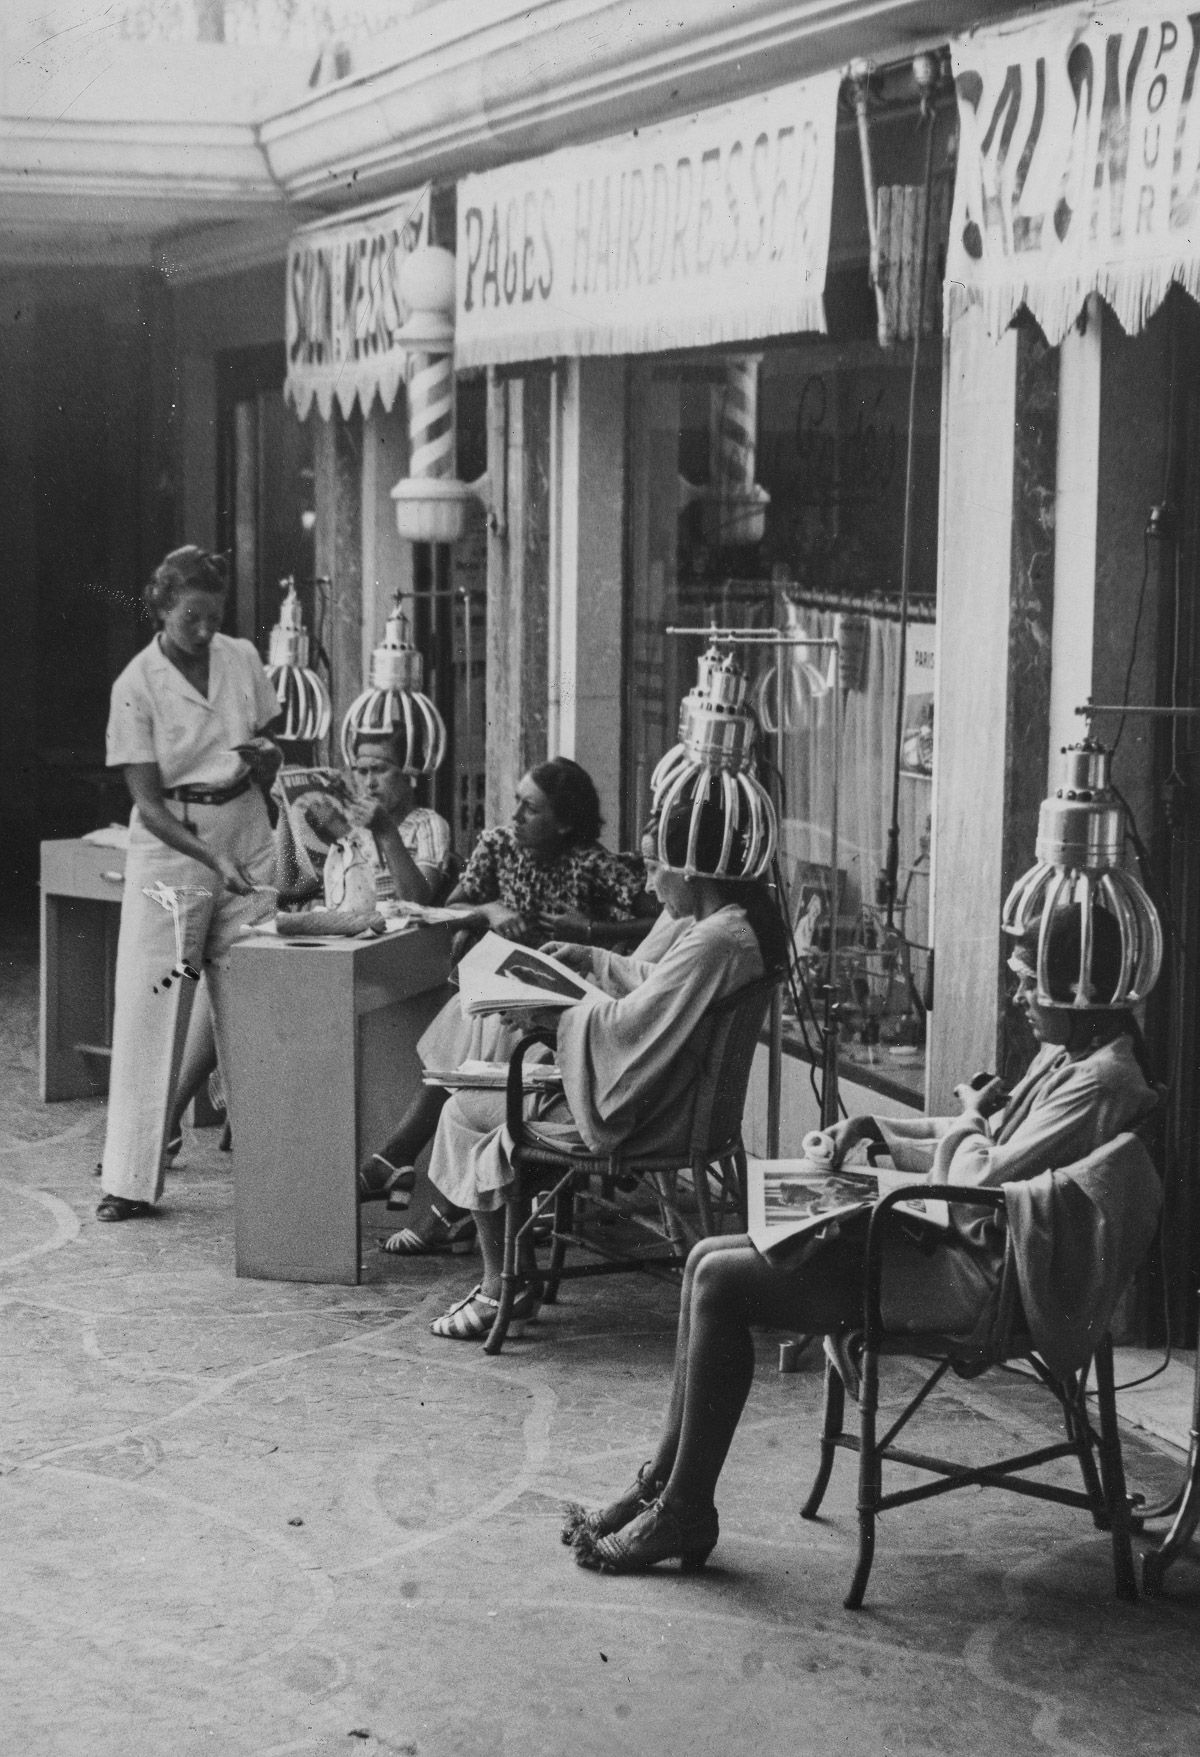 d7d1cf3a9addf8 At a hair salon in Cannes, France, 1937 : TheWayWeWere | Global ...